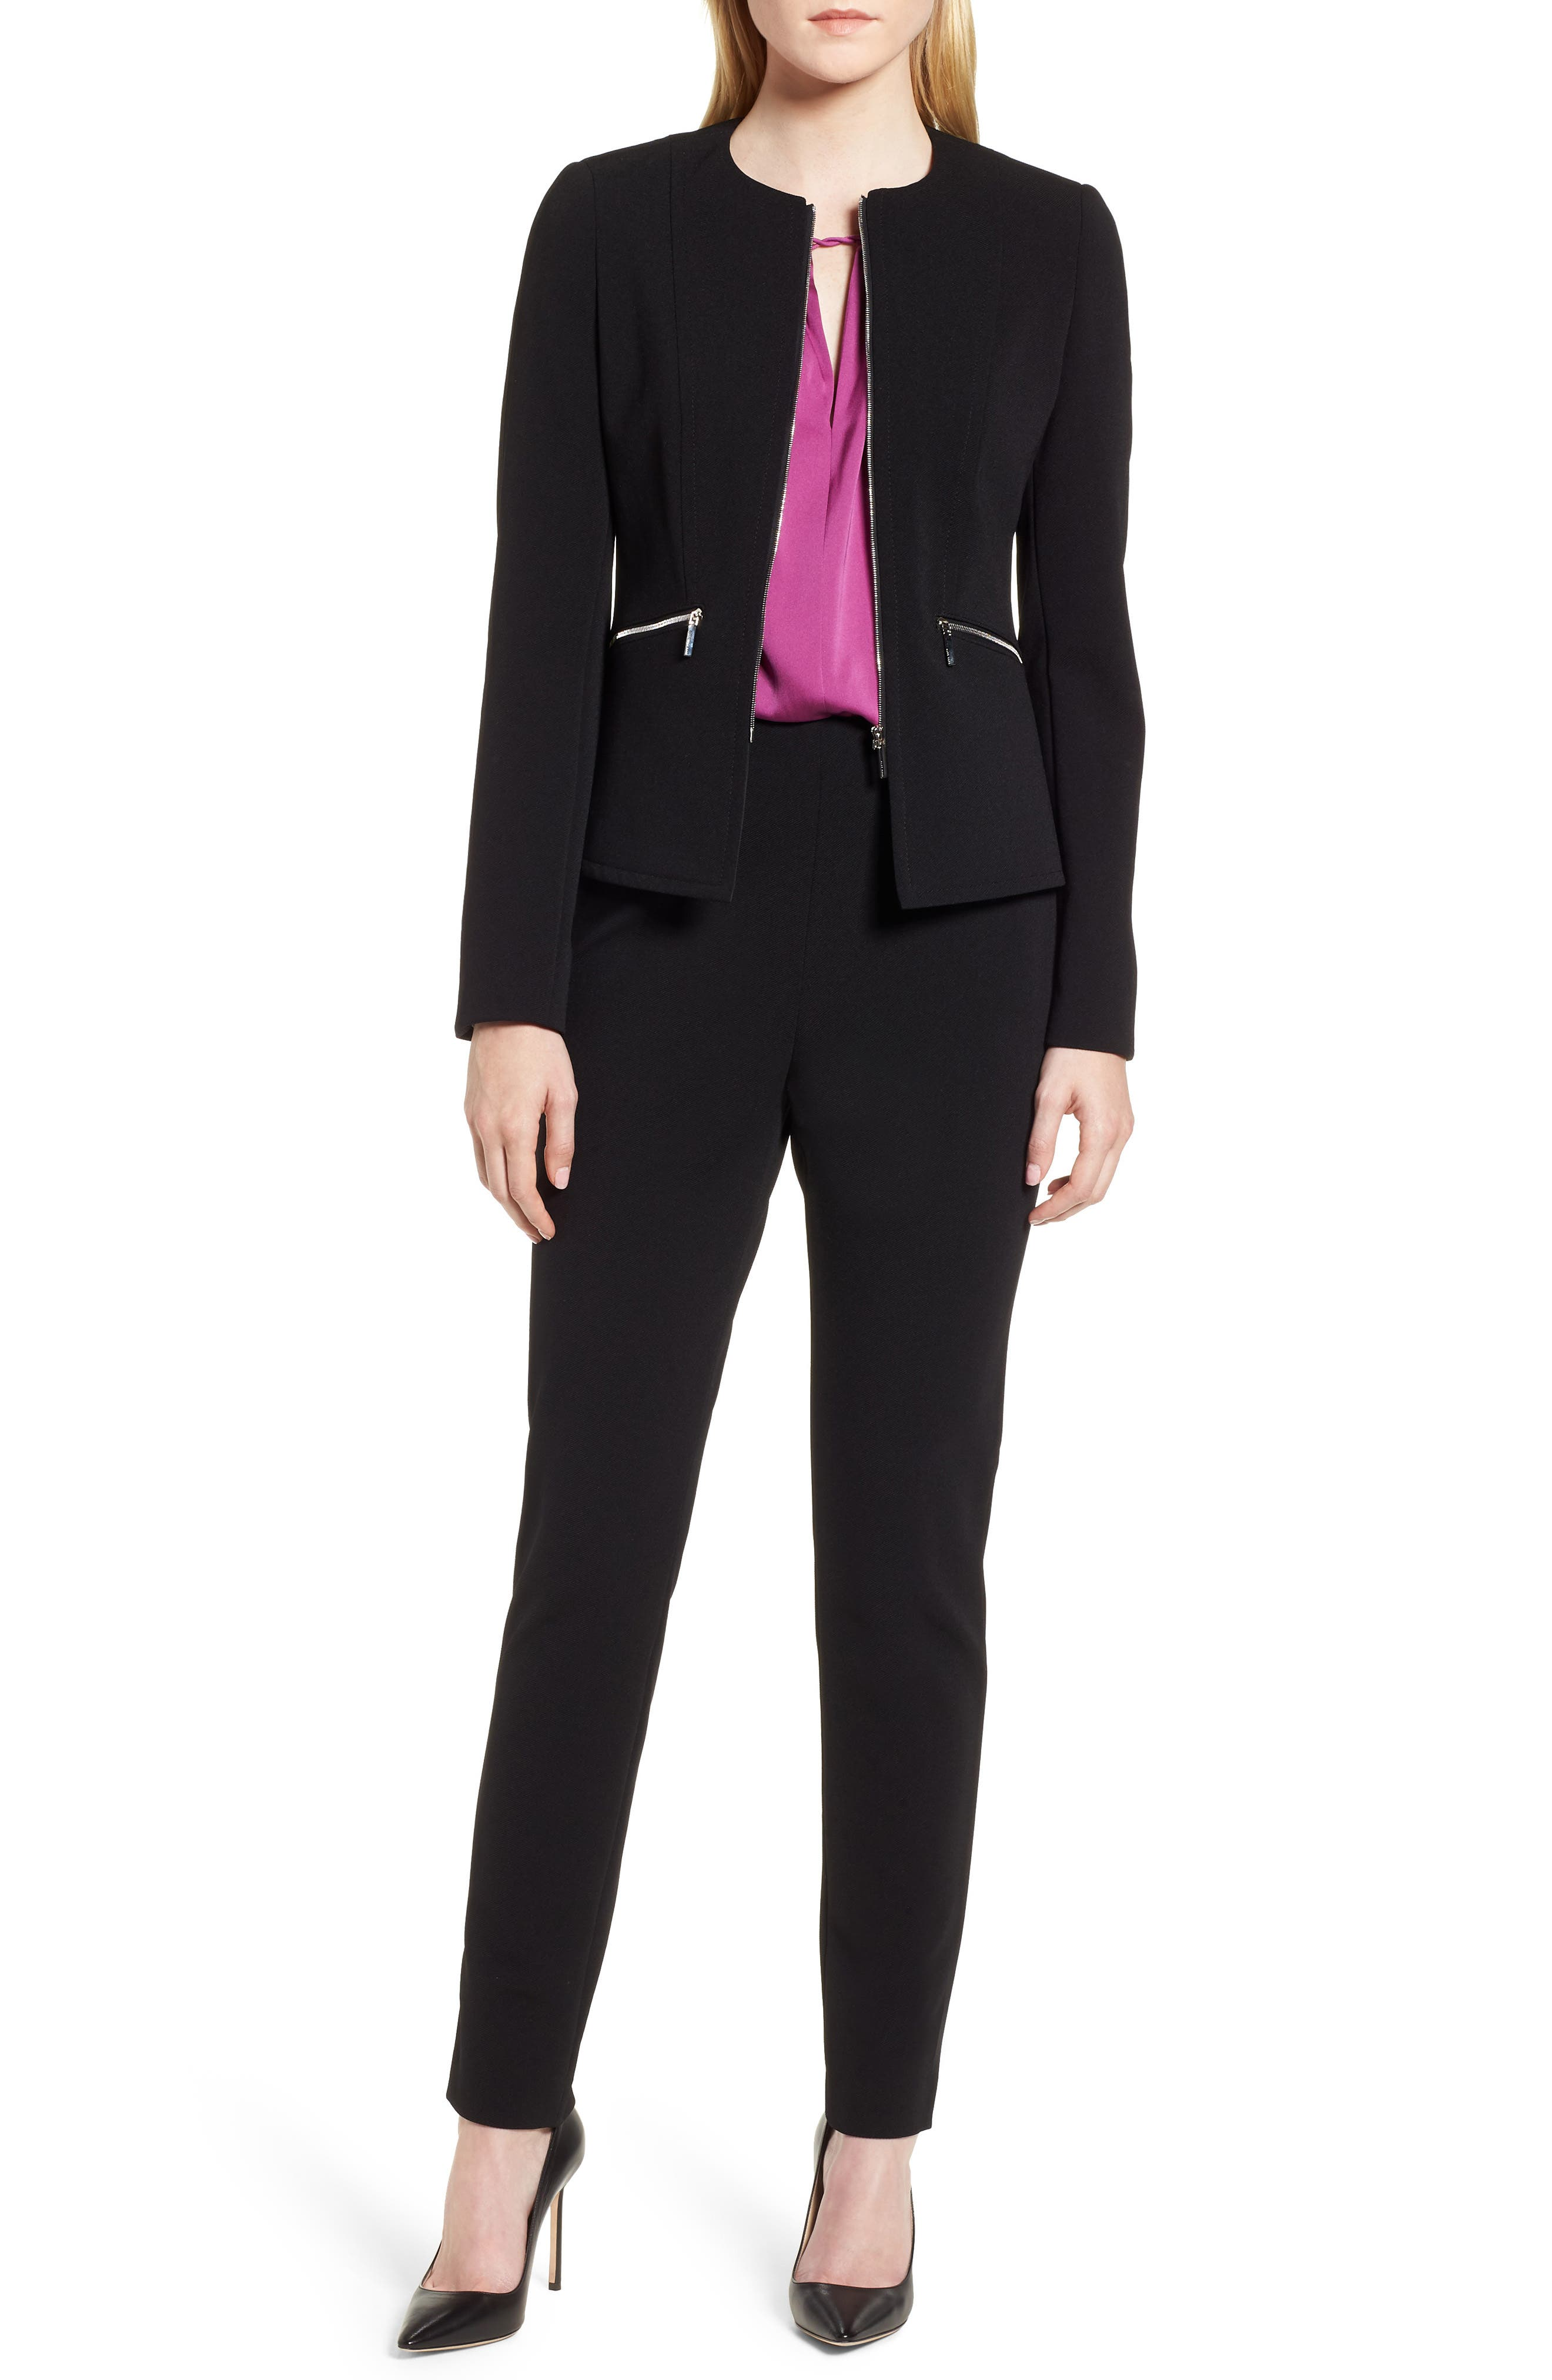 Jazulara Twill Jersey Suit Jacket,                             Alternate thumbnail 7, color,                             Black